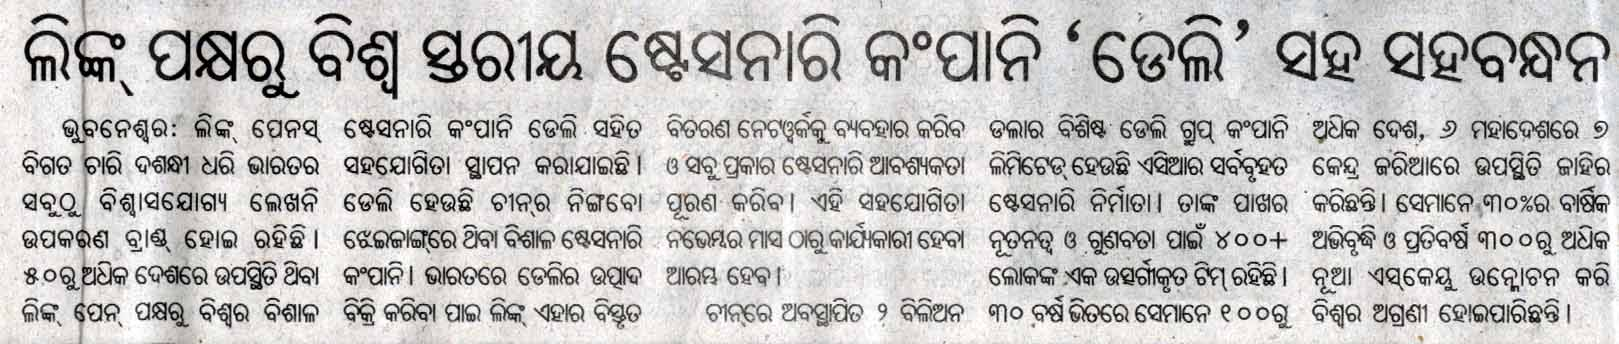 Hiranchal Odia Newspaper